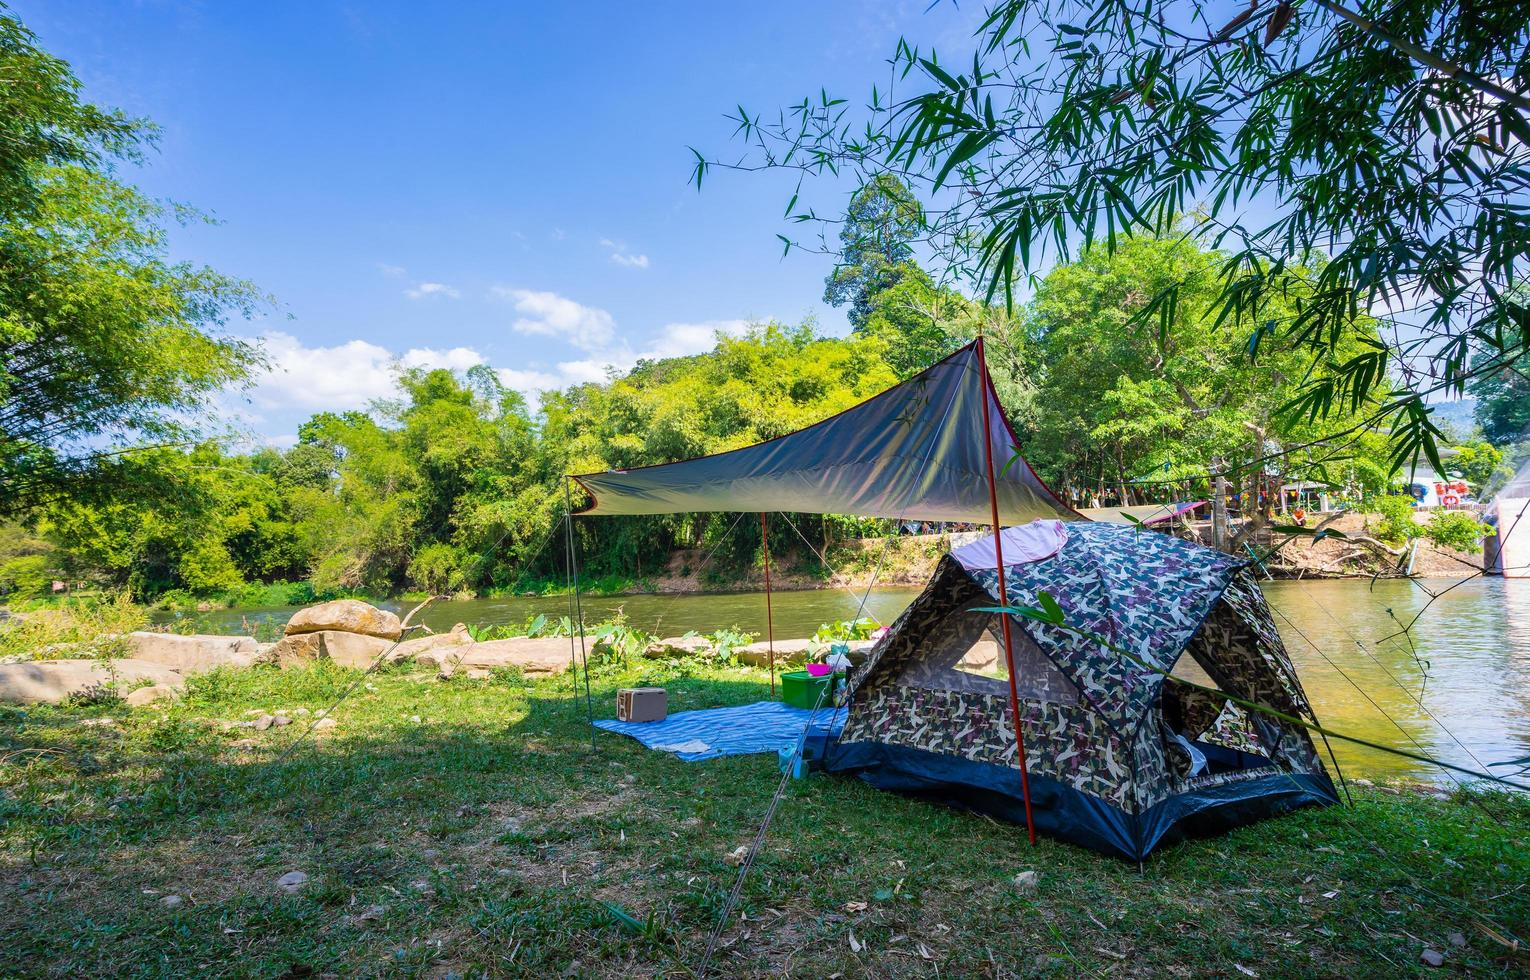 Camping and tent in nature at the river photo